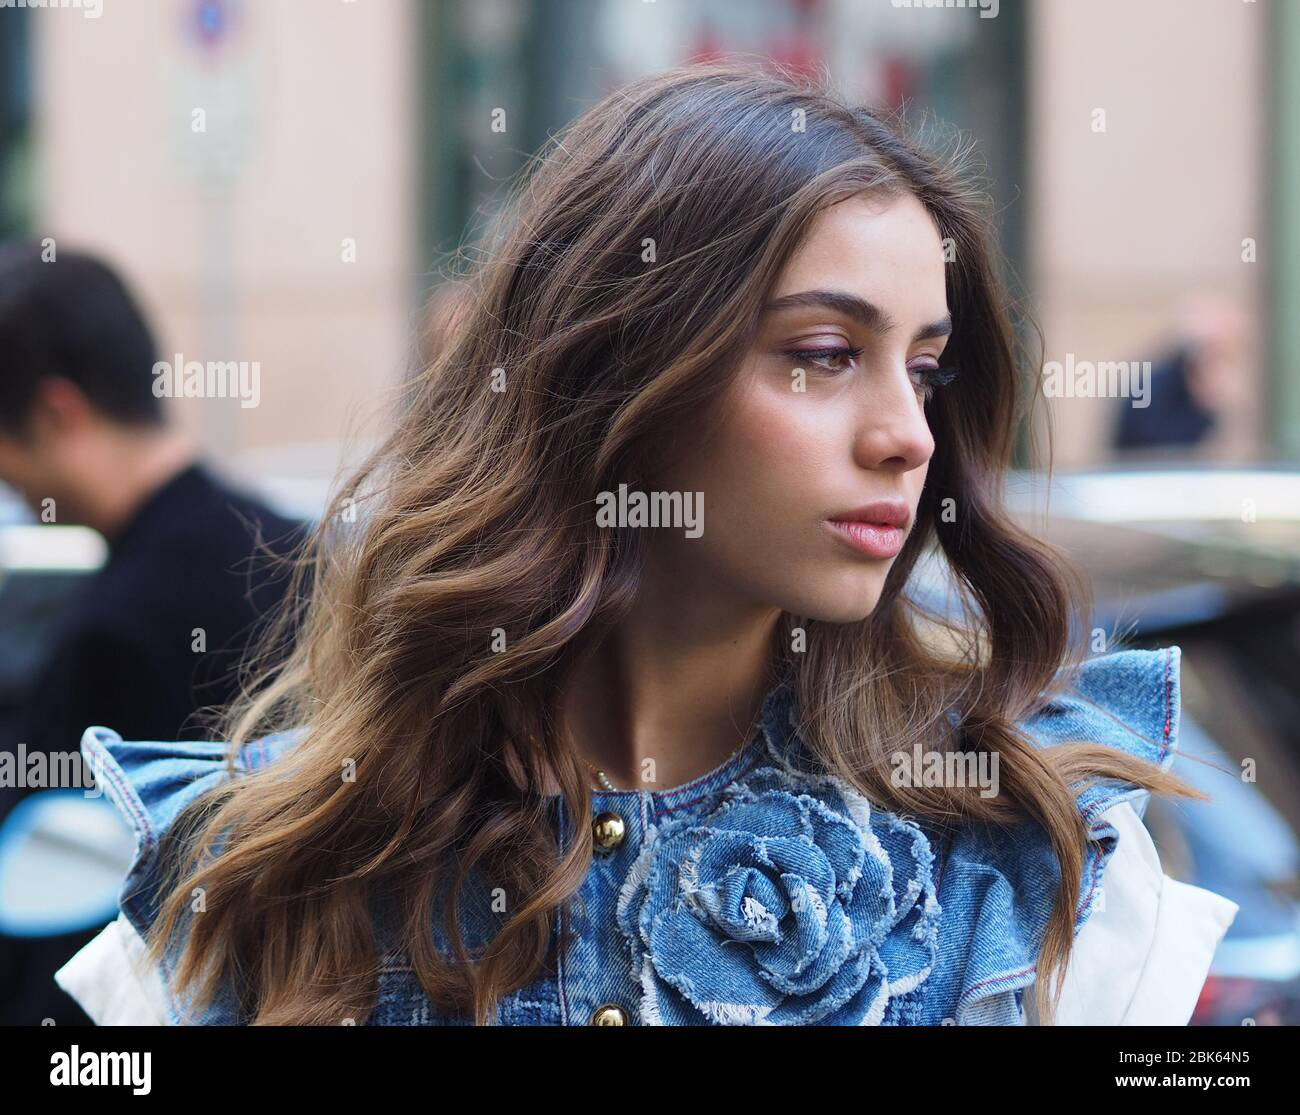 Milan Italy 22 February 2020 Young Celebrity Actress Elisa Visari Posing For Photographers In The Street Before Film Conference Stock Photo Alamy